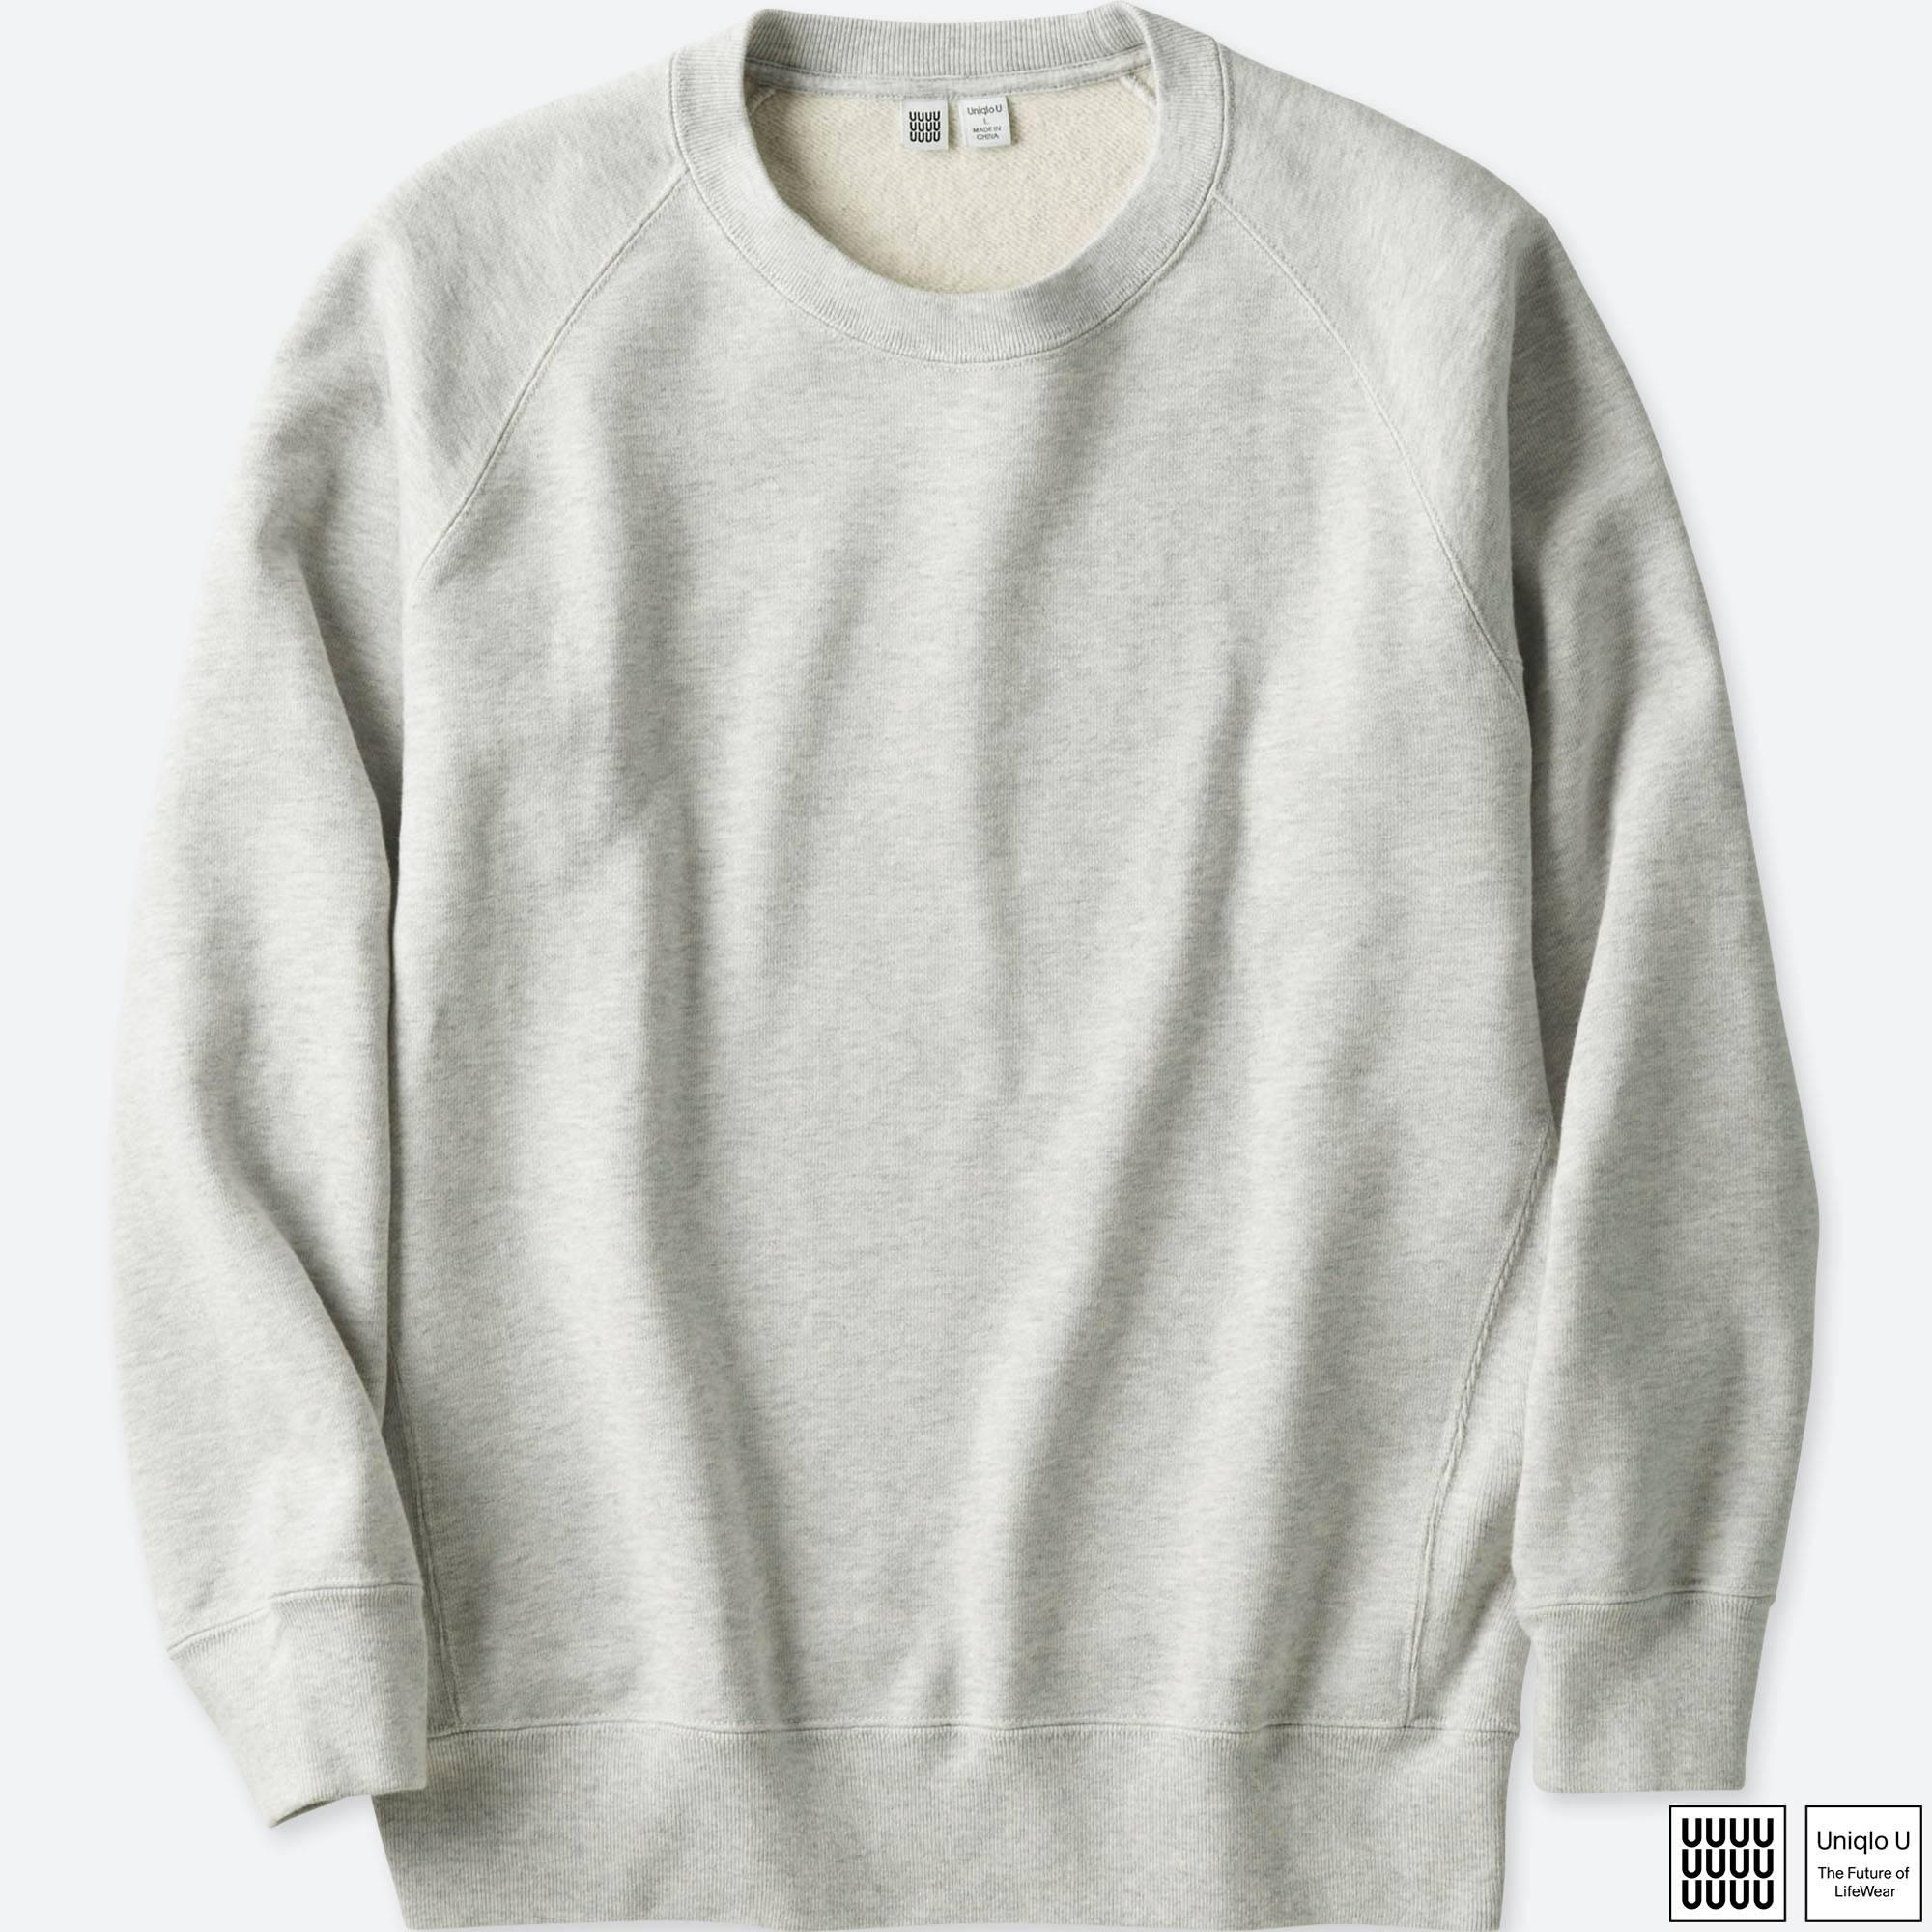 c808beb095 Lyst - Uniqlo Men U Long-sleeve Sweatshirt in Gray for Men